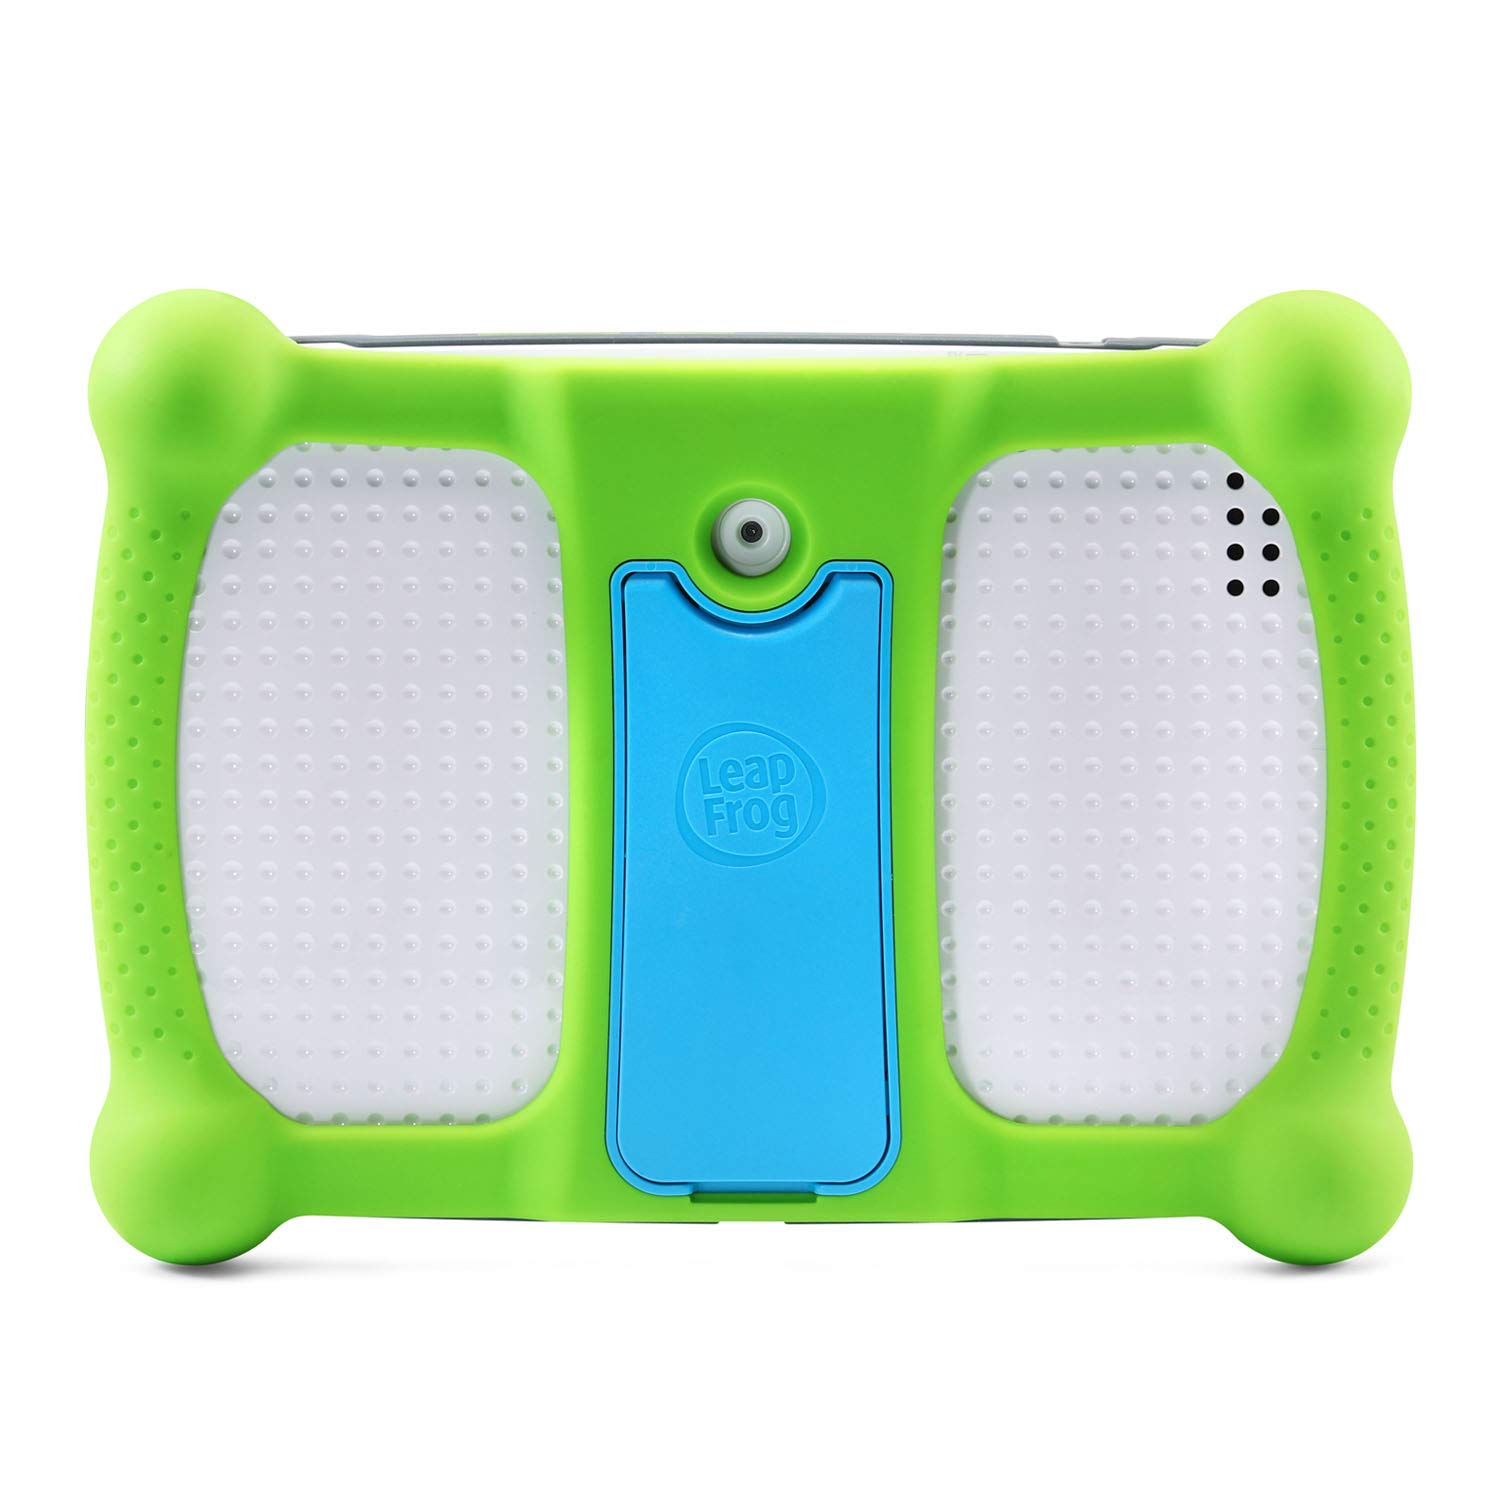 LeapFrog LeapPad Academy Kids' Learning Tablet, Green by LeapFrog (Image #5)